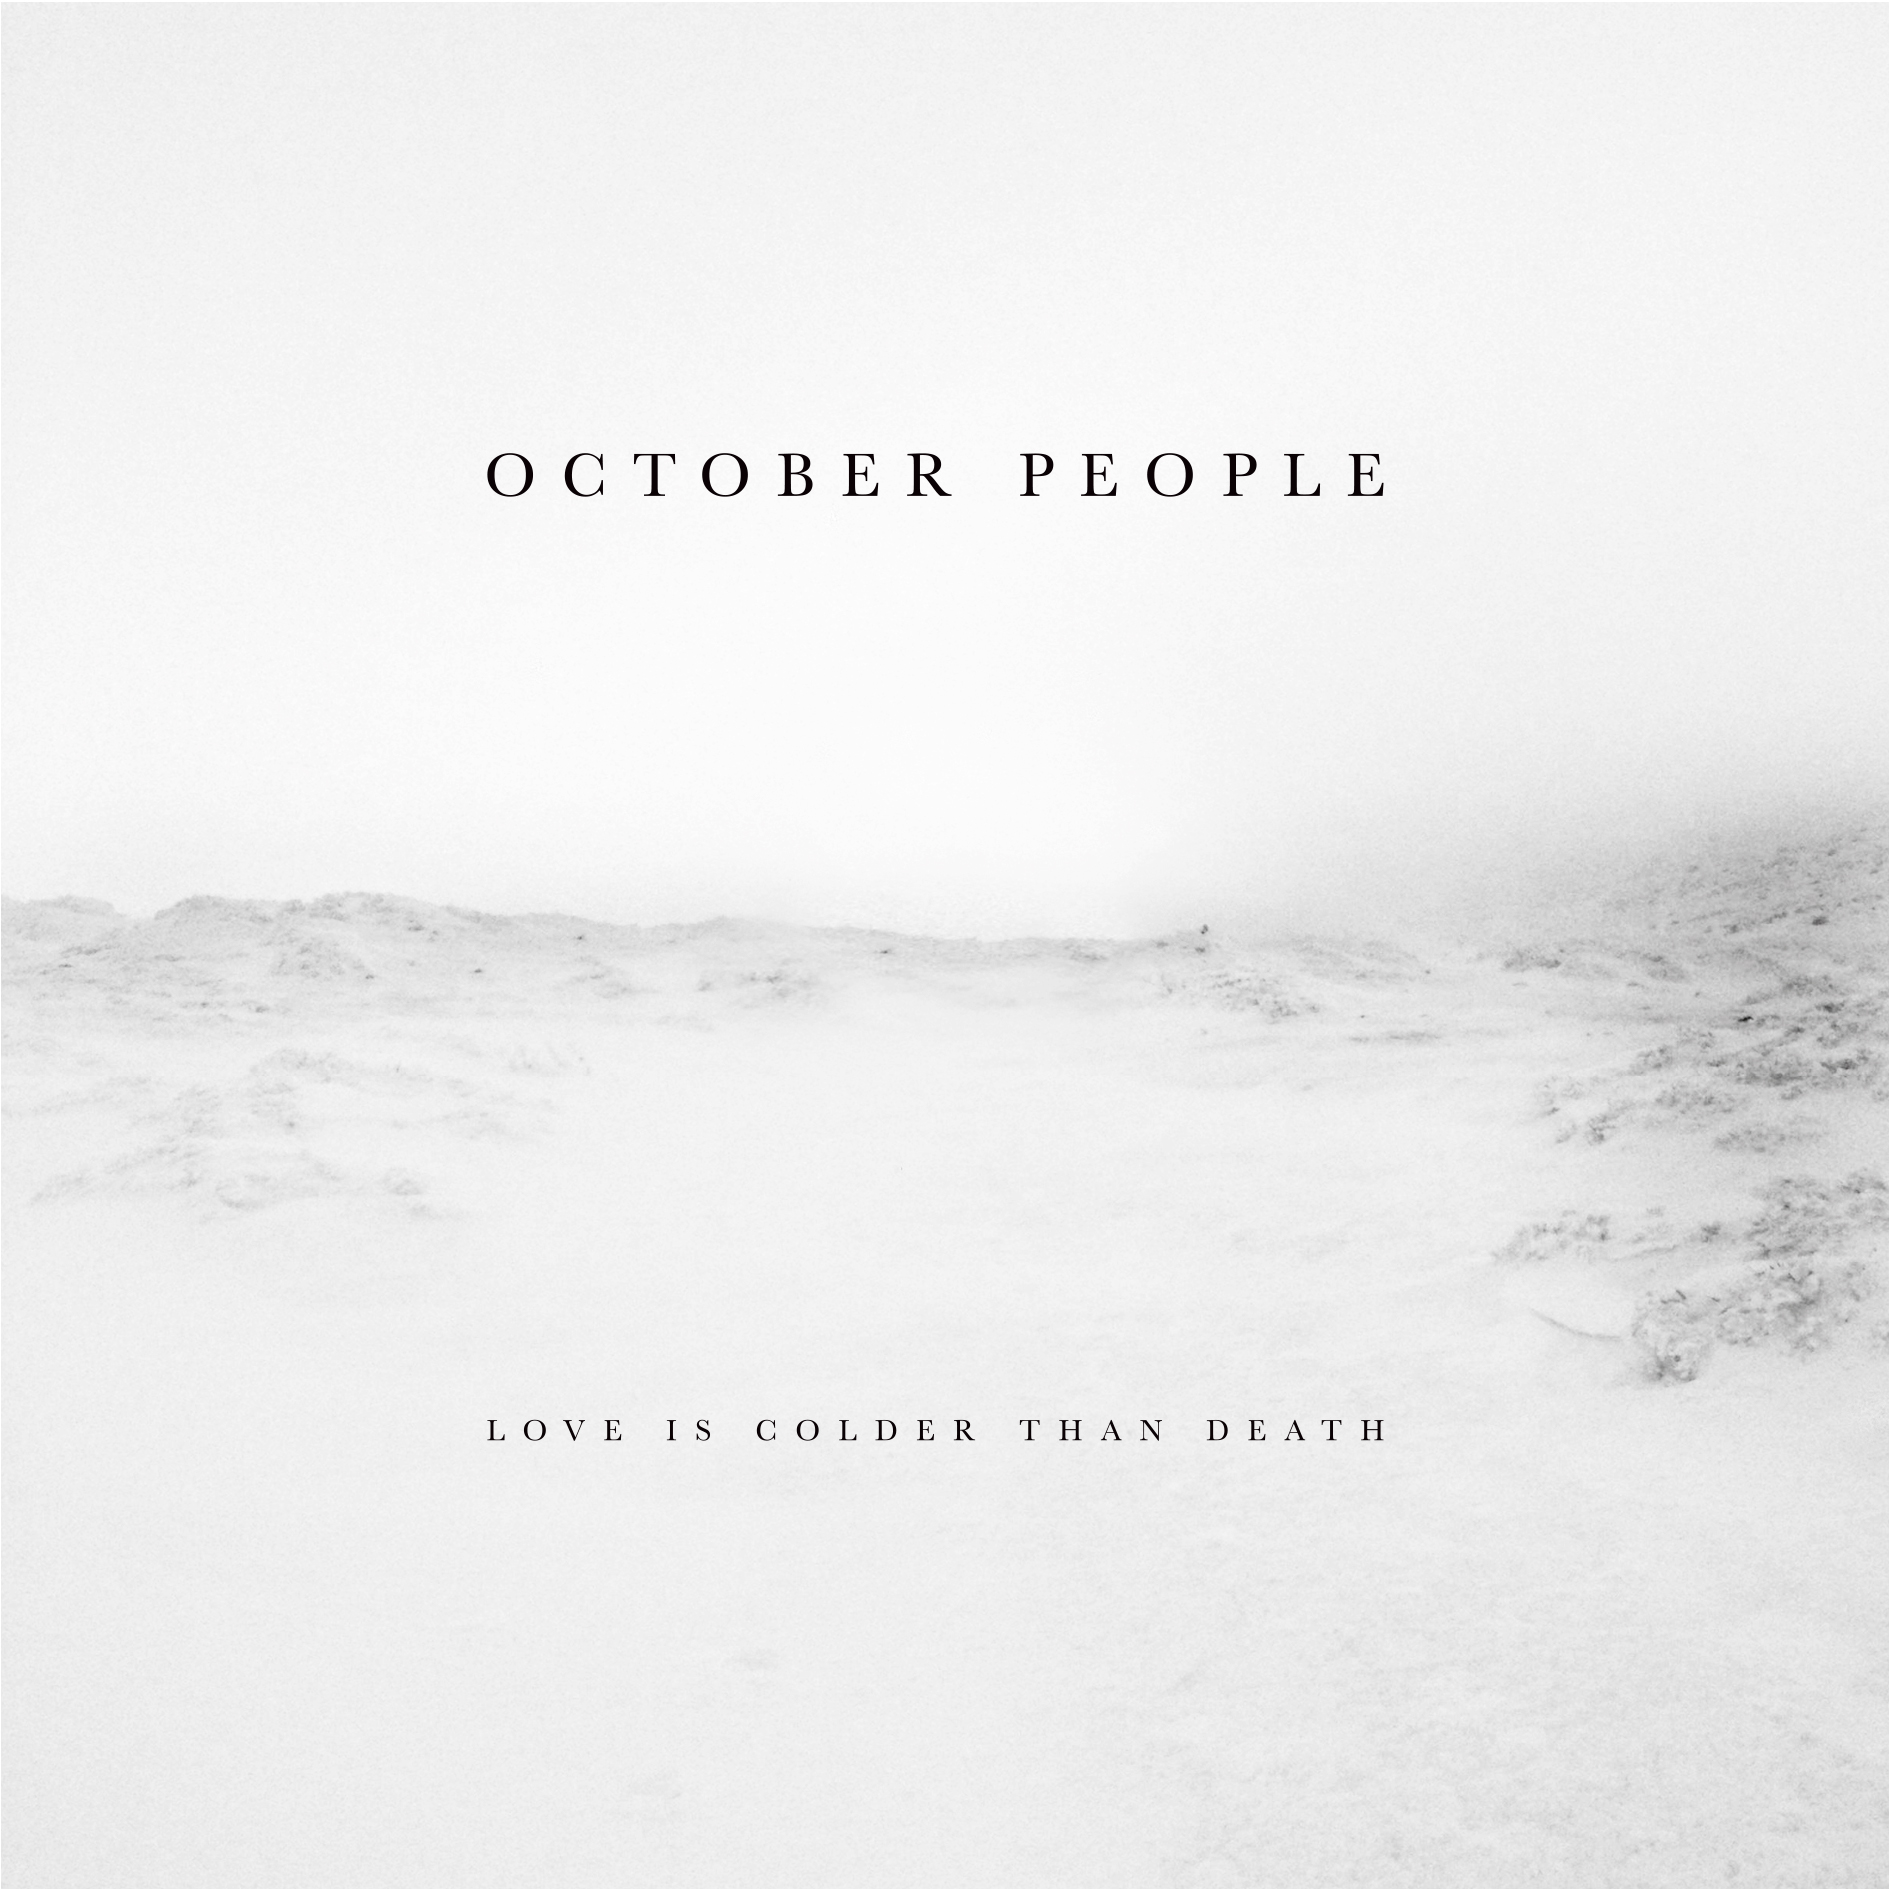 Portada October People